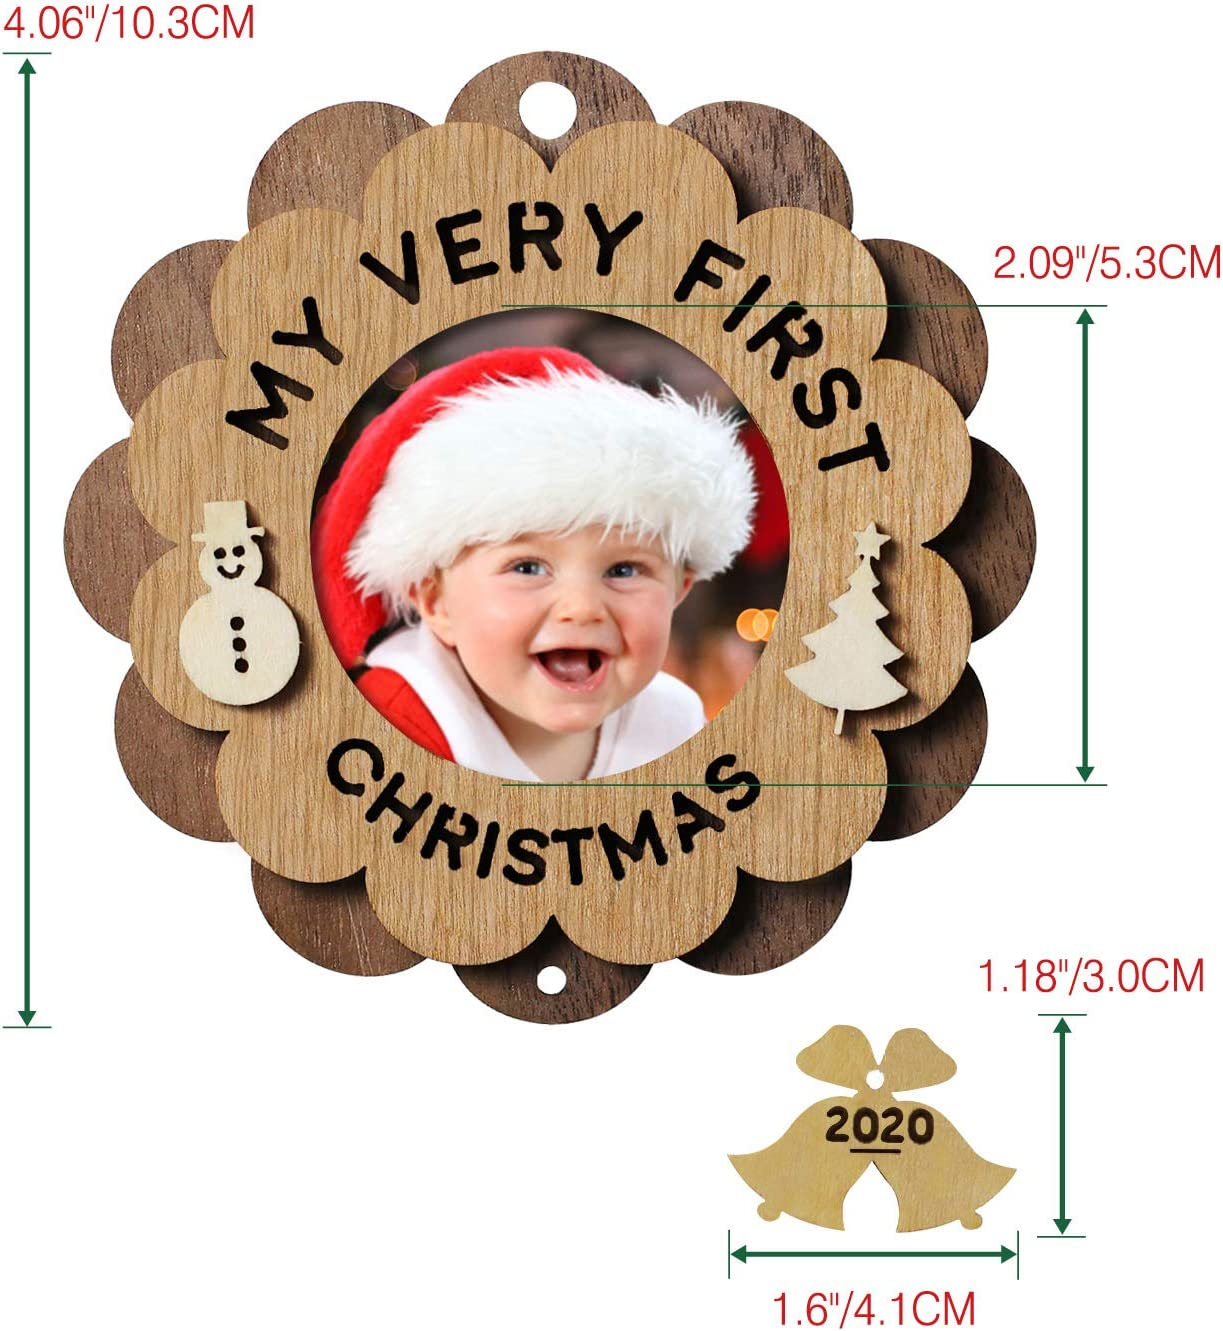 2020 First Christmas Picture Frame Amazon.com: Creawoo My Very First Christmas Ornament Picture Frame